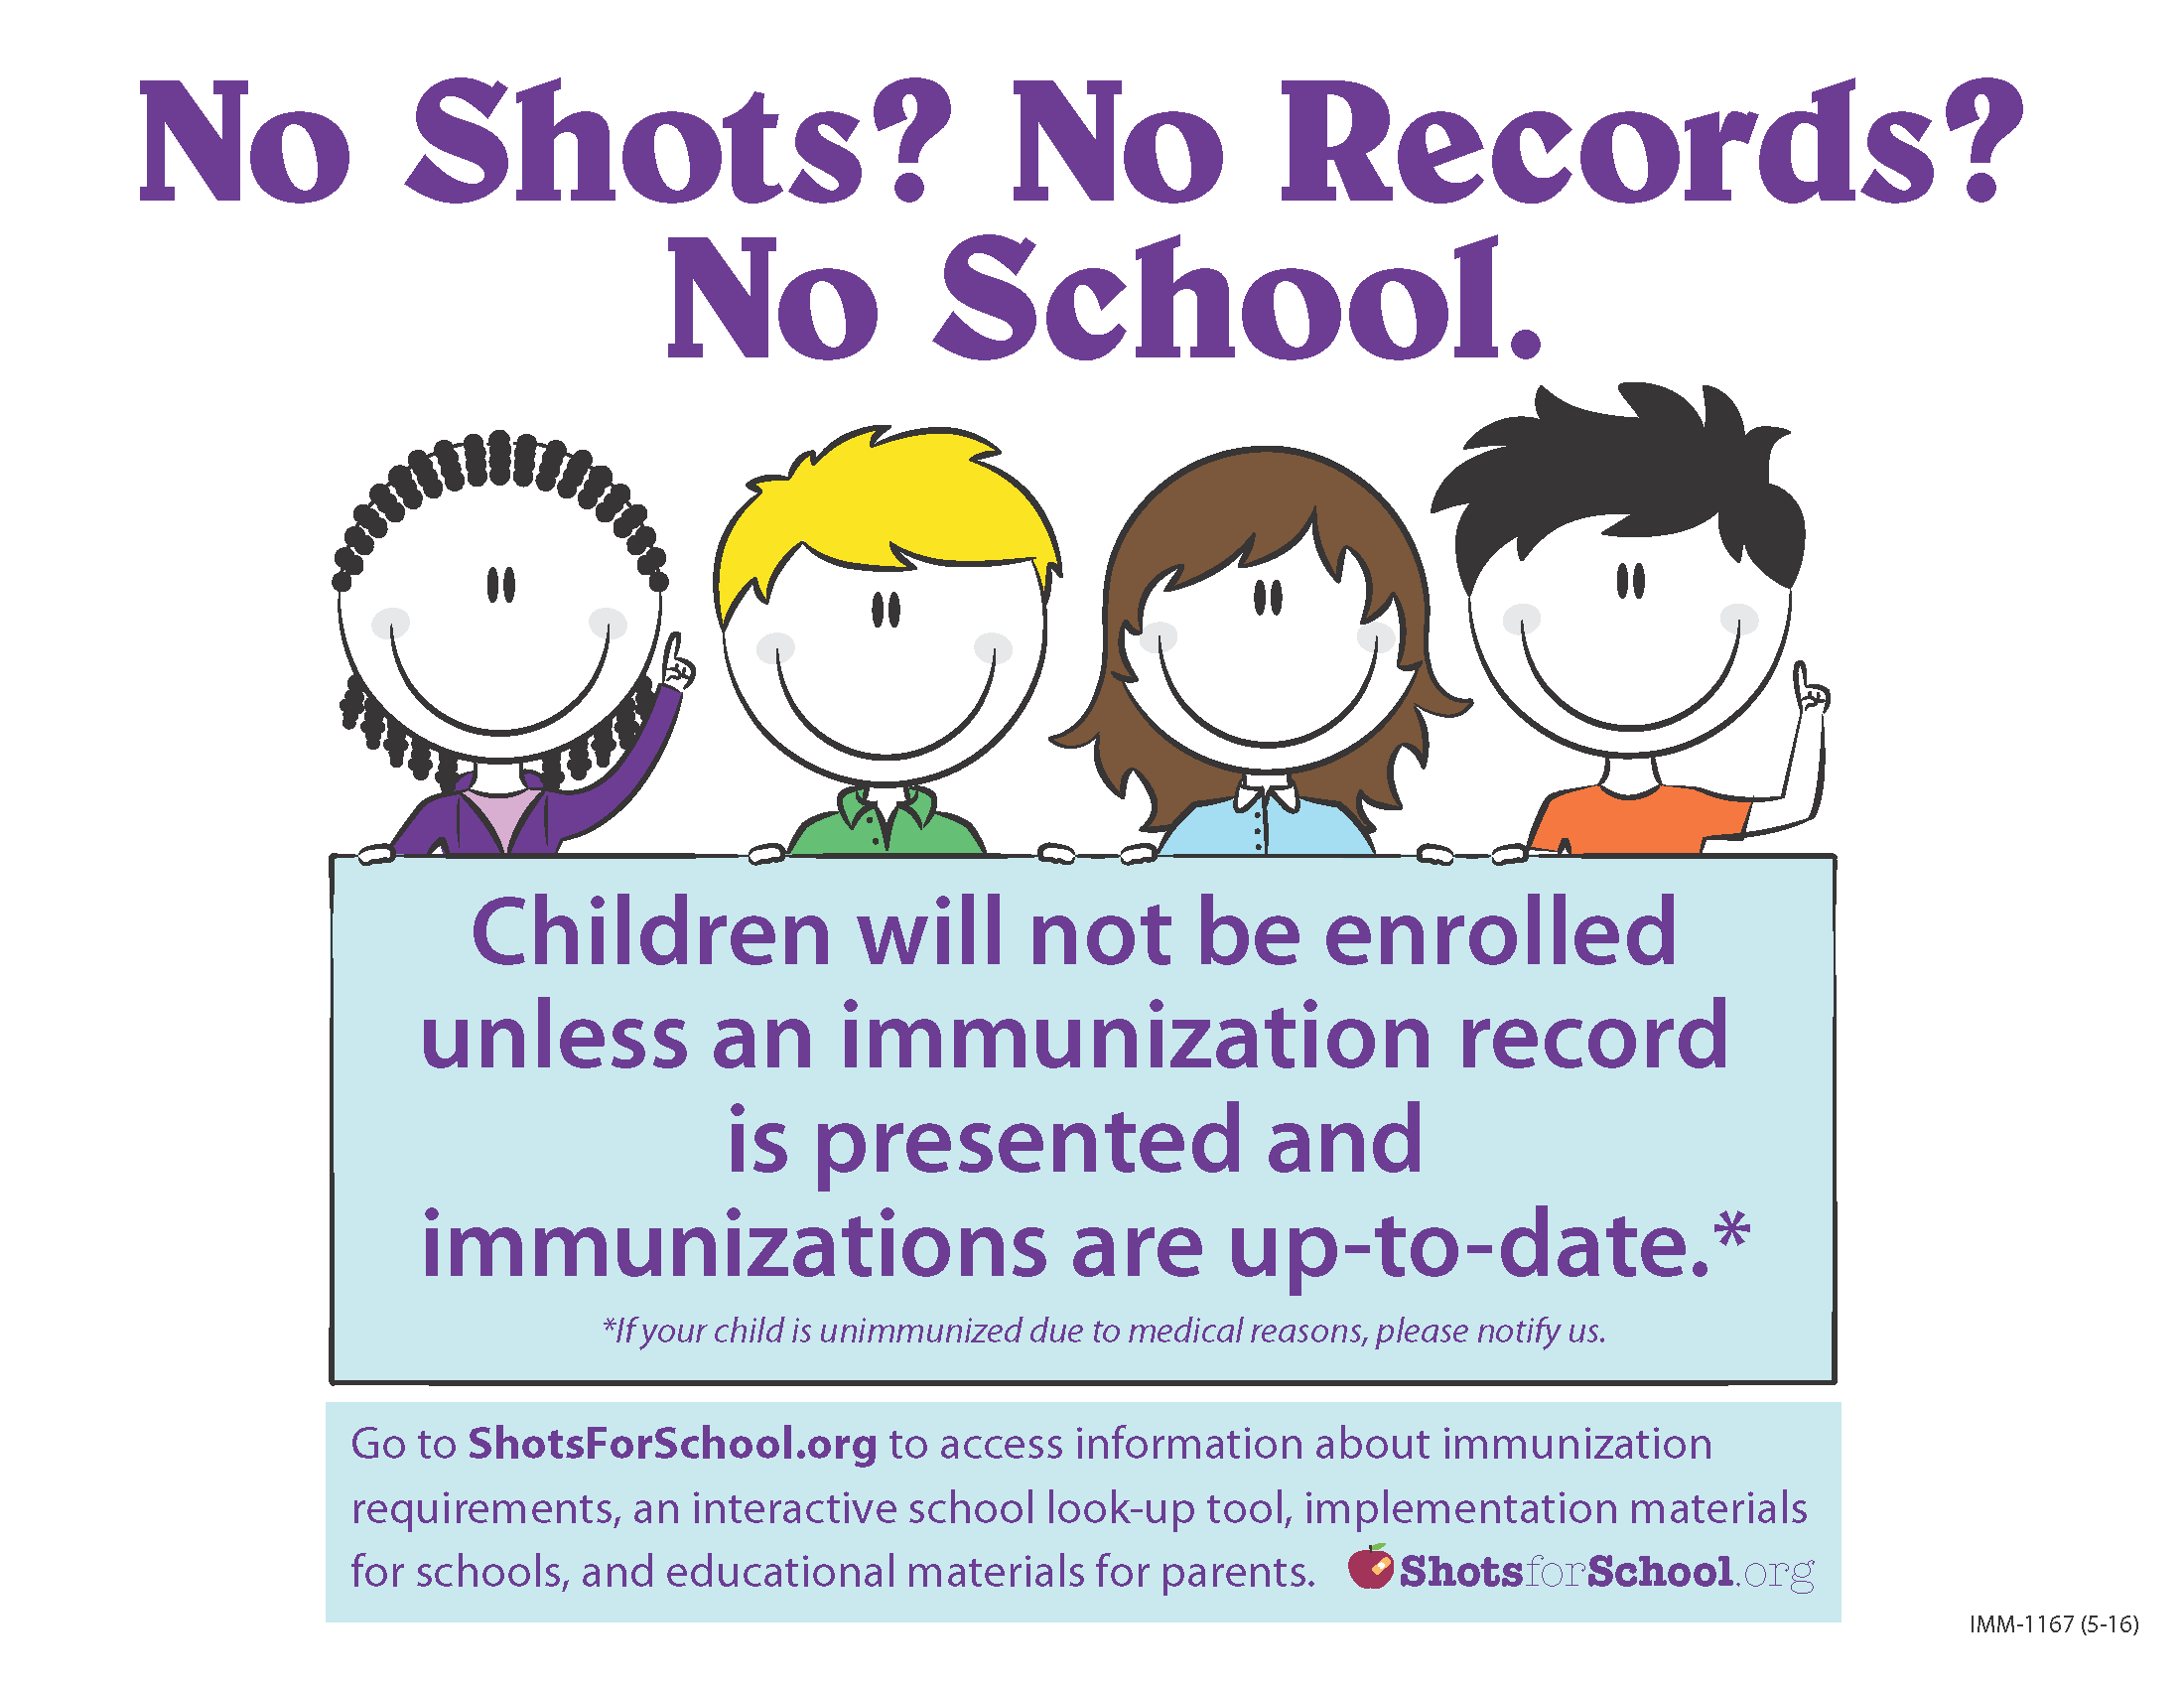 No shots? No Records? No school. Go to shotsforschool.org to access info about immunization requirements